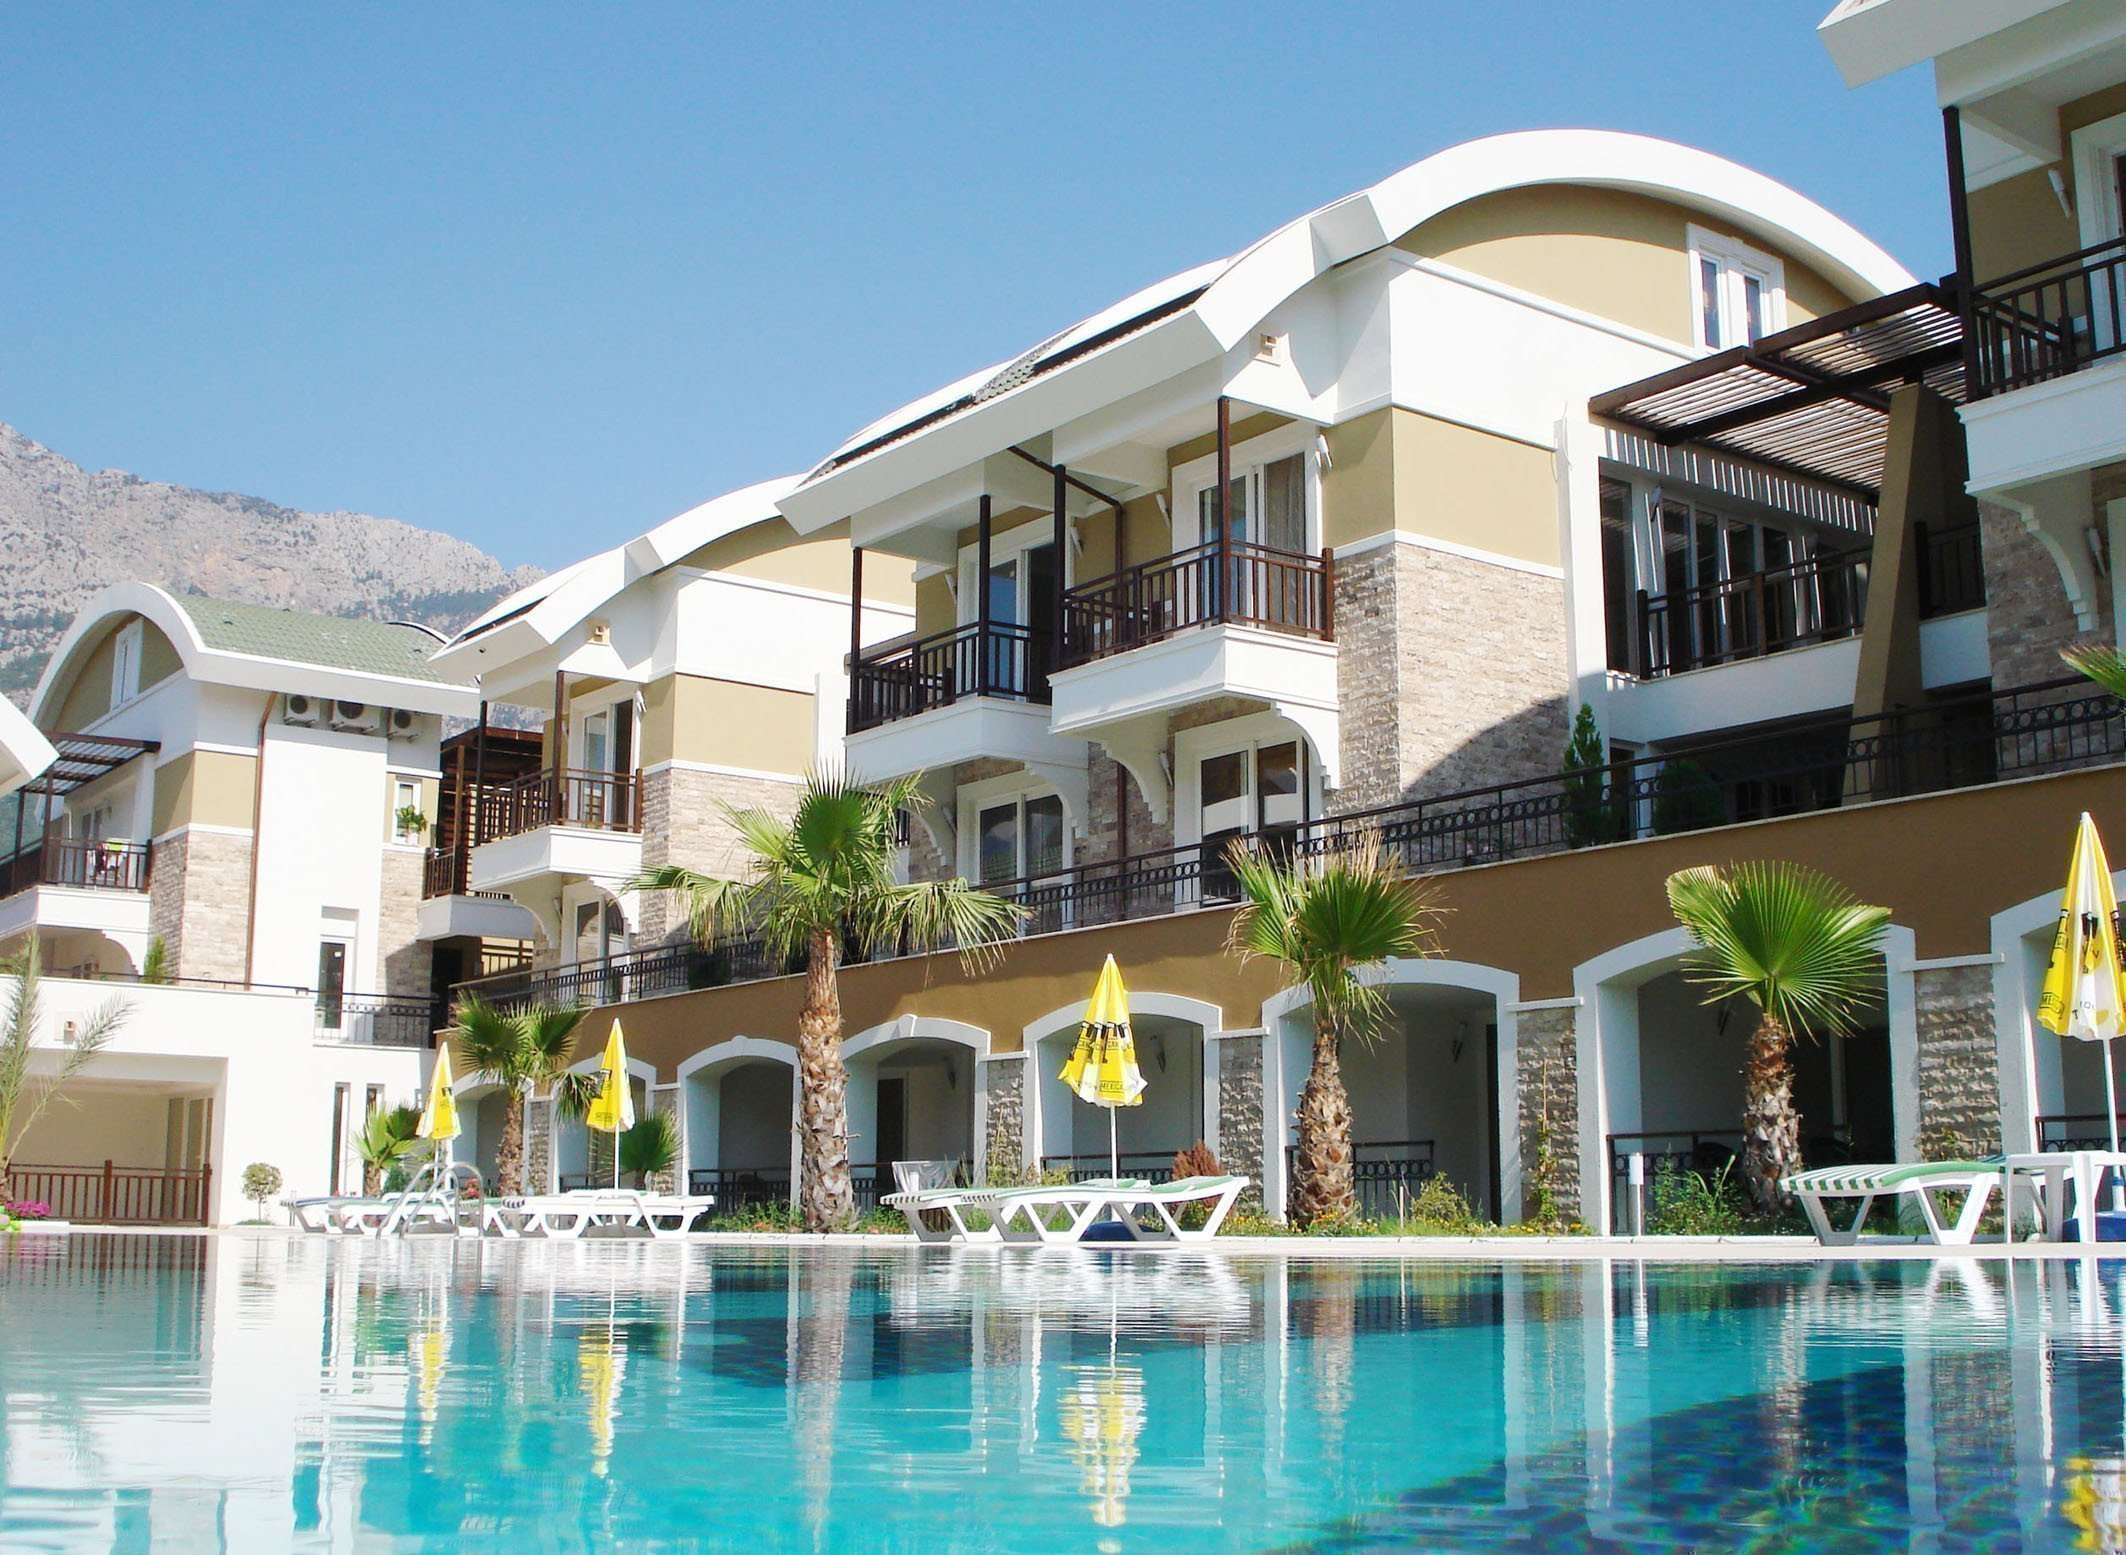 Sale property abroad Kemer Sultan Homes